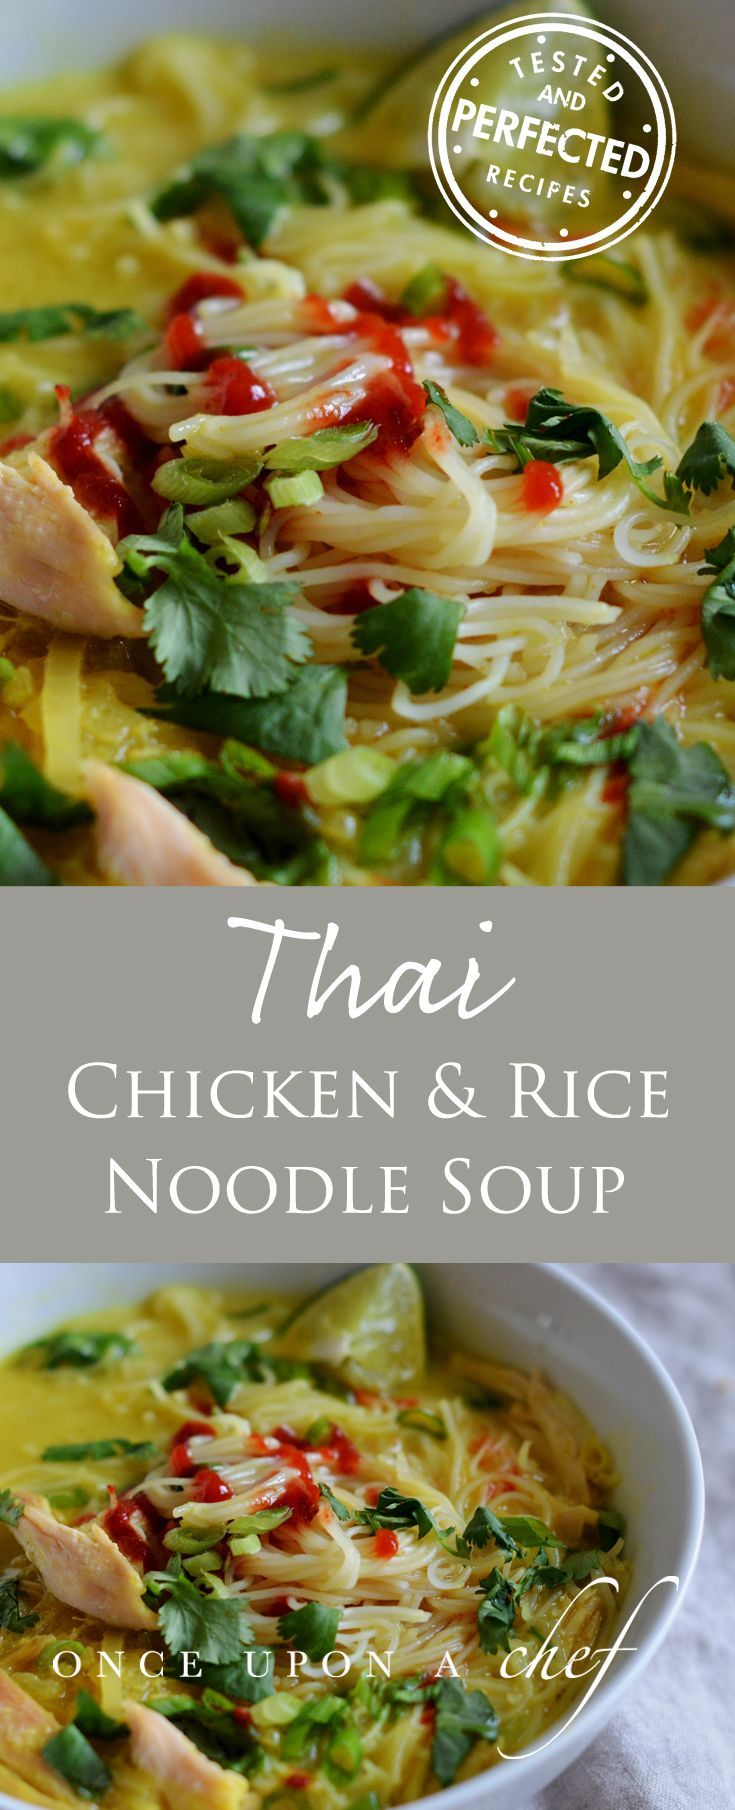 Thai Chicken & Rice Noodle Soup